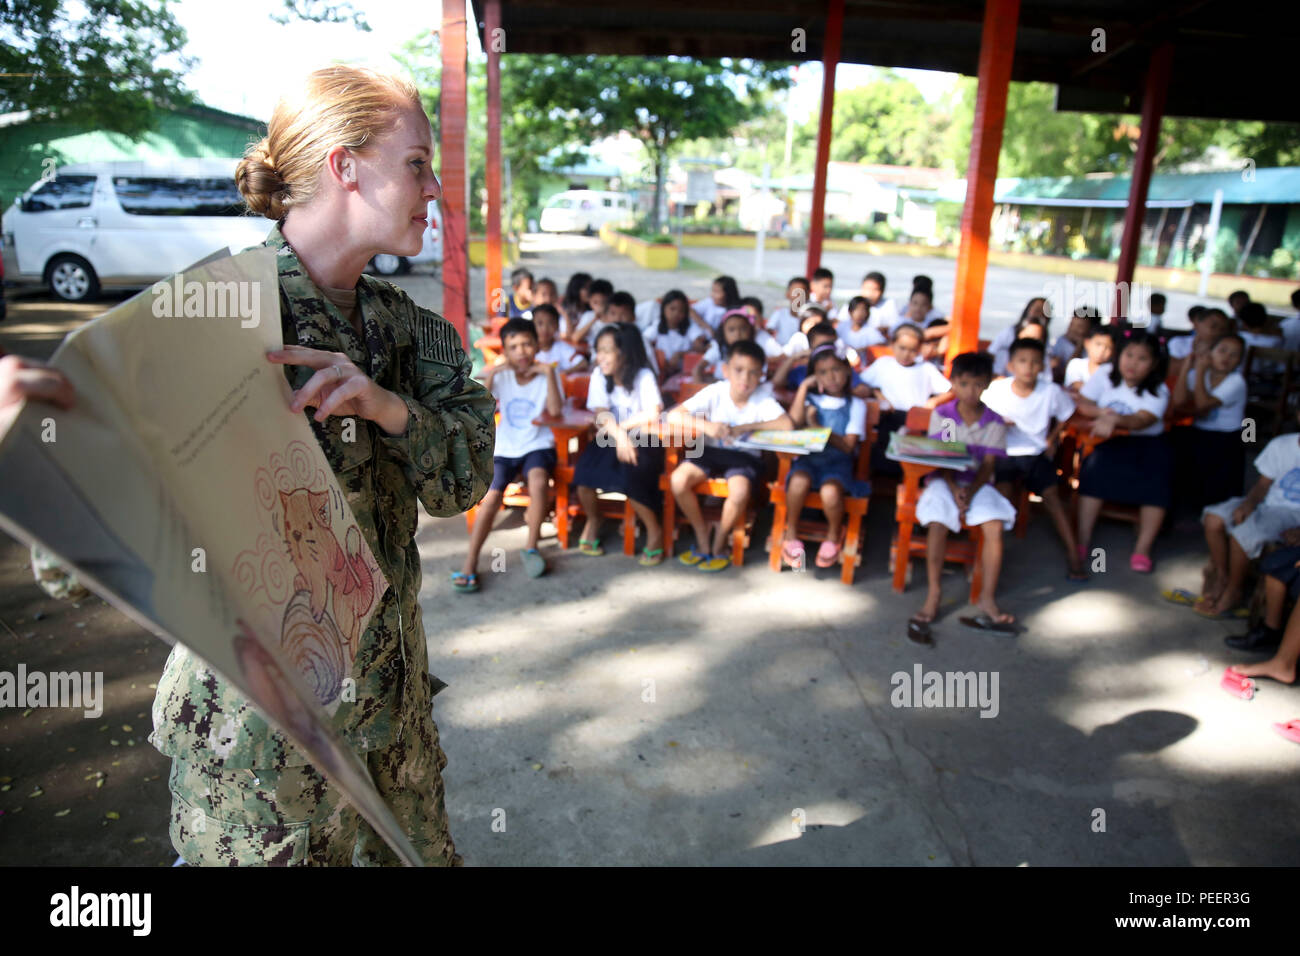 150812-M-GO800-041 SAN FERNANDO CITY, Philippines (Aug. 12, 2015) – Lt. j.g. Elizabeth Gerardo reads to students at Pagudpud Elementary School Aug. 12. Task Force Forager will be in the Philippines until Aug. 15 providing medical and engineering assistance. Task Force Forager, embarked aboard the Military Sealift Command joint high speed vessel USNS Millinocket (JHSV 3) is serving as the secondary platform for Pacific Partnership, led by an expeditionary command element from the Navy's 30th Naval Construction Regiment (30 NCR) from Port Hueneme, Calif. Now in its 10th iteration, Pacific Partne - Stock Image